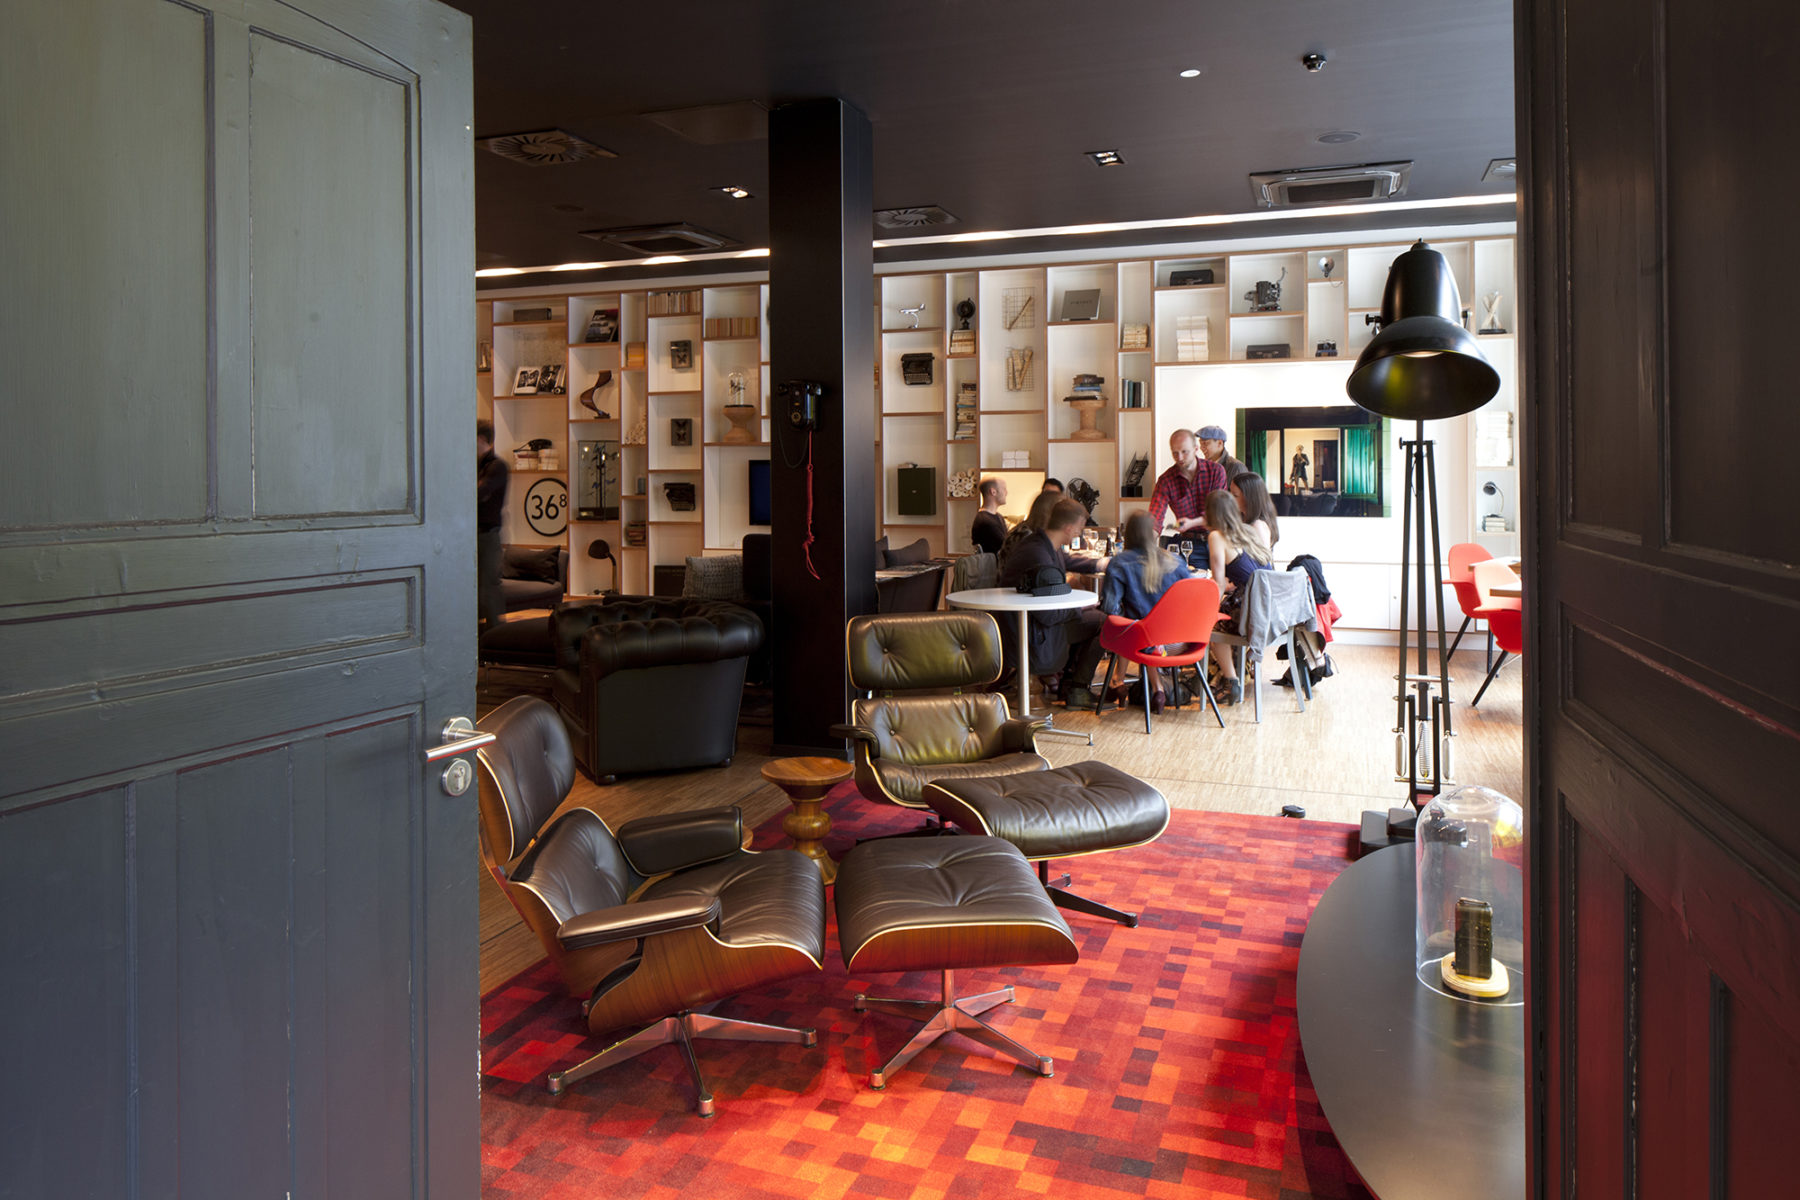 CitizenM Hotel, Glasgow | by McAteer Photograph